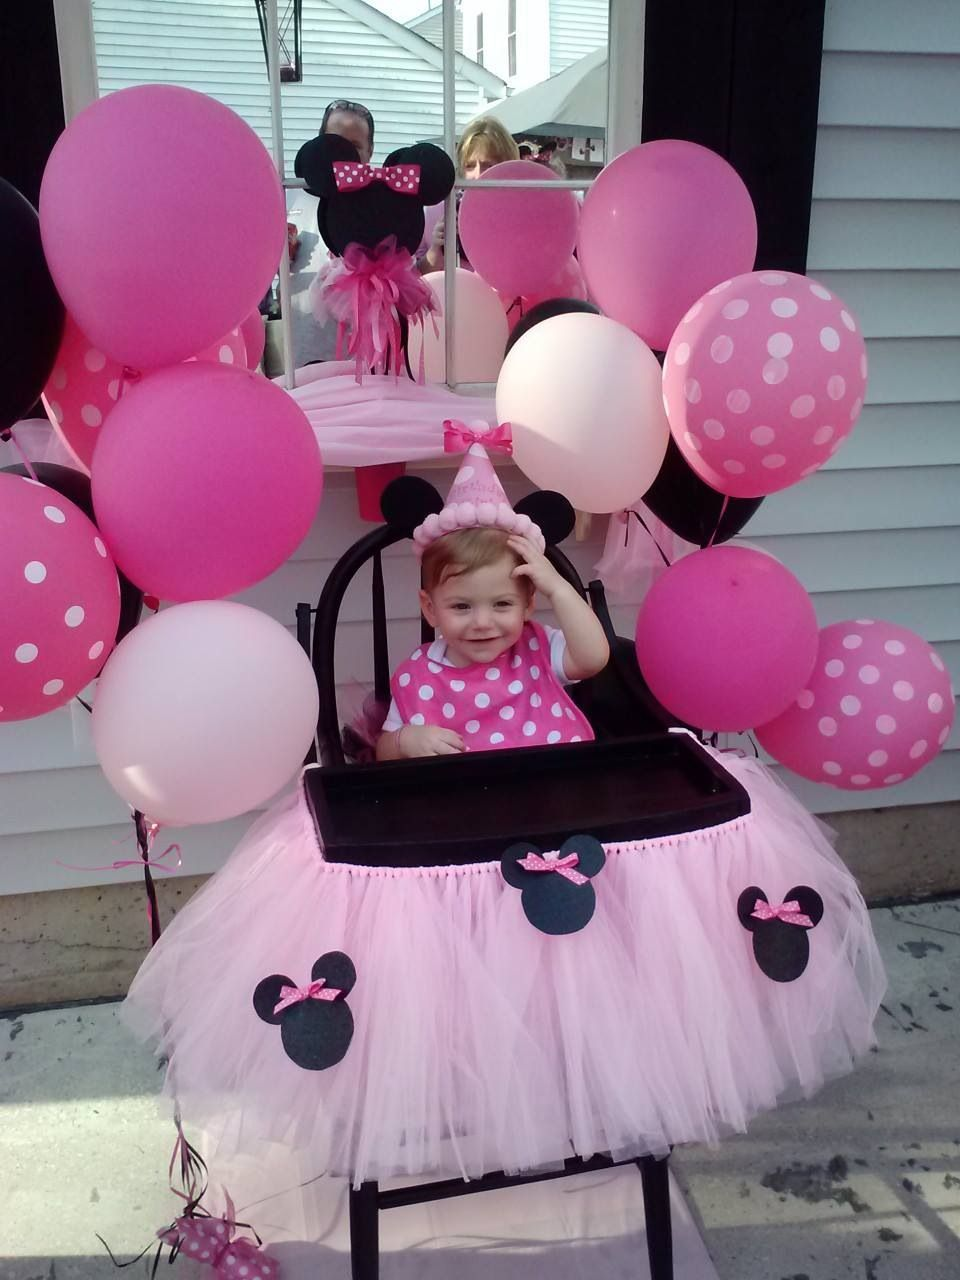 Minnie Mouse 1st birthday party Jose Gutierrez Gutierrez